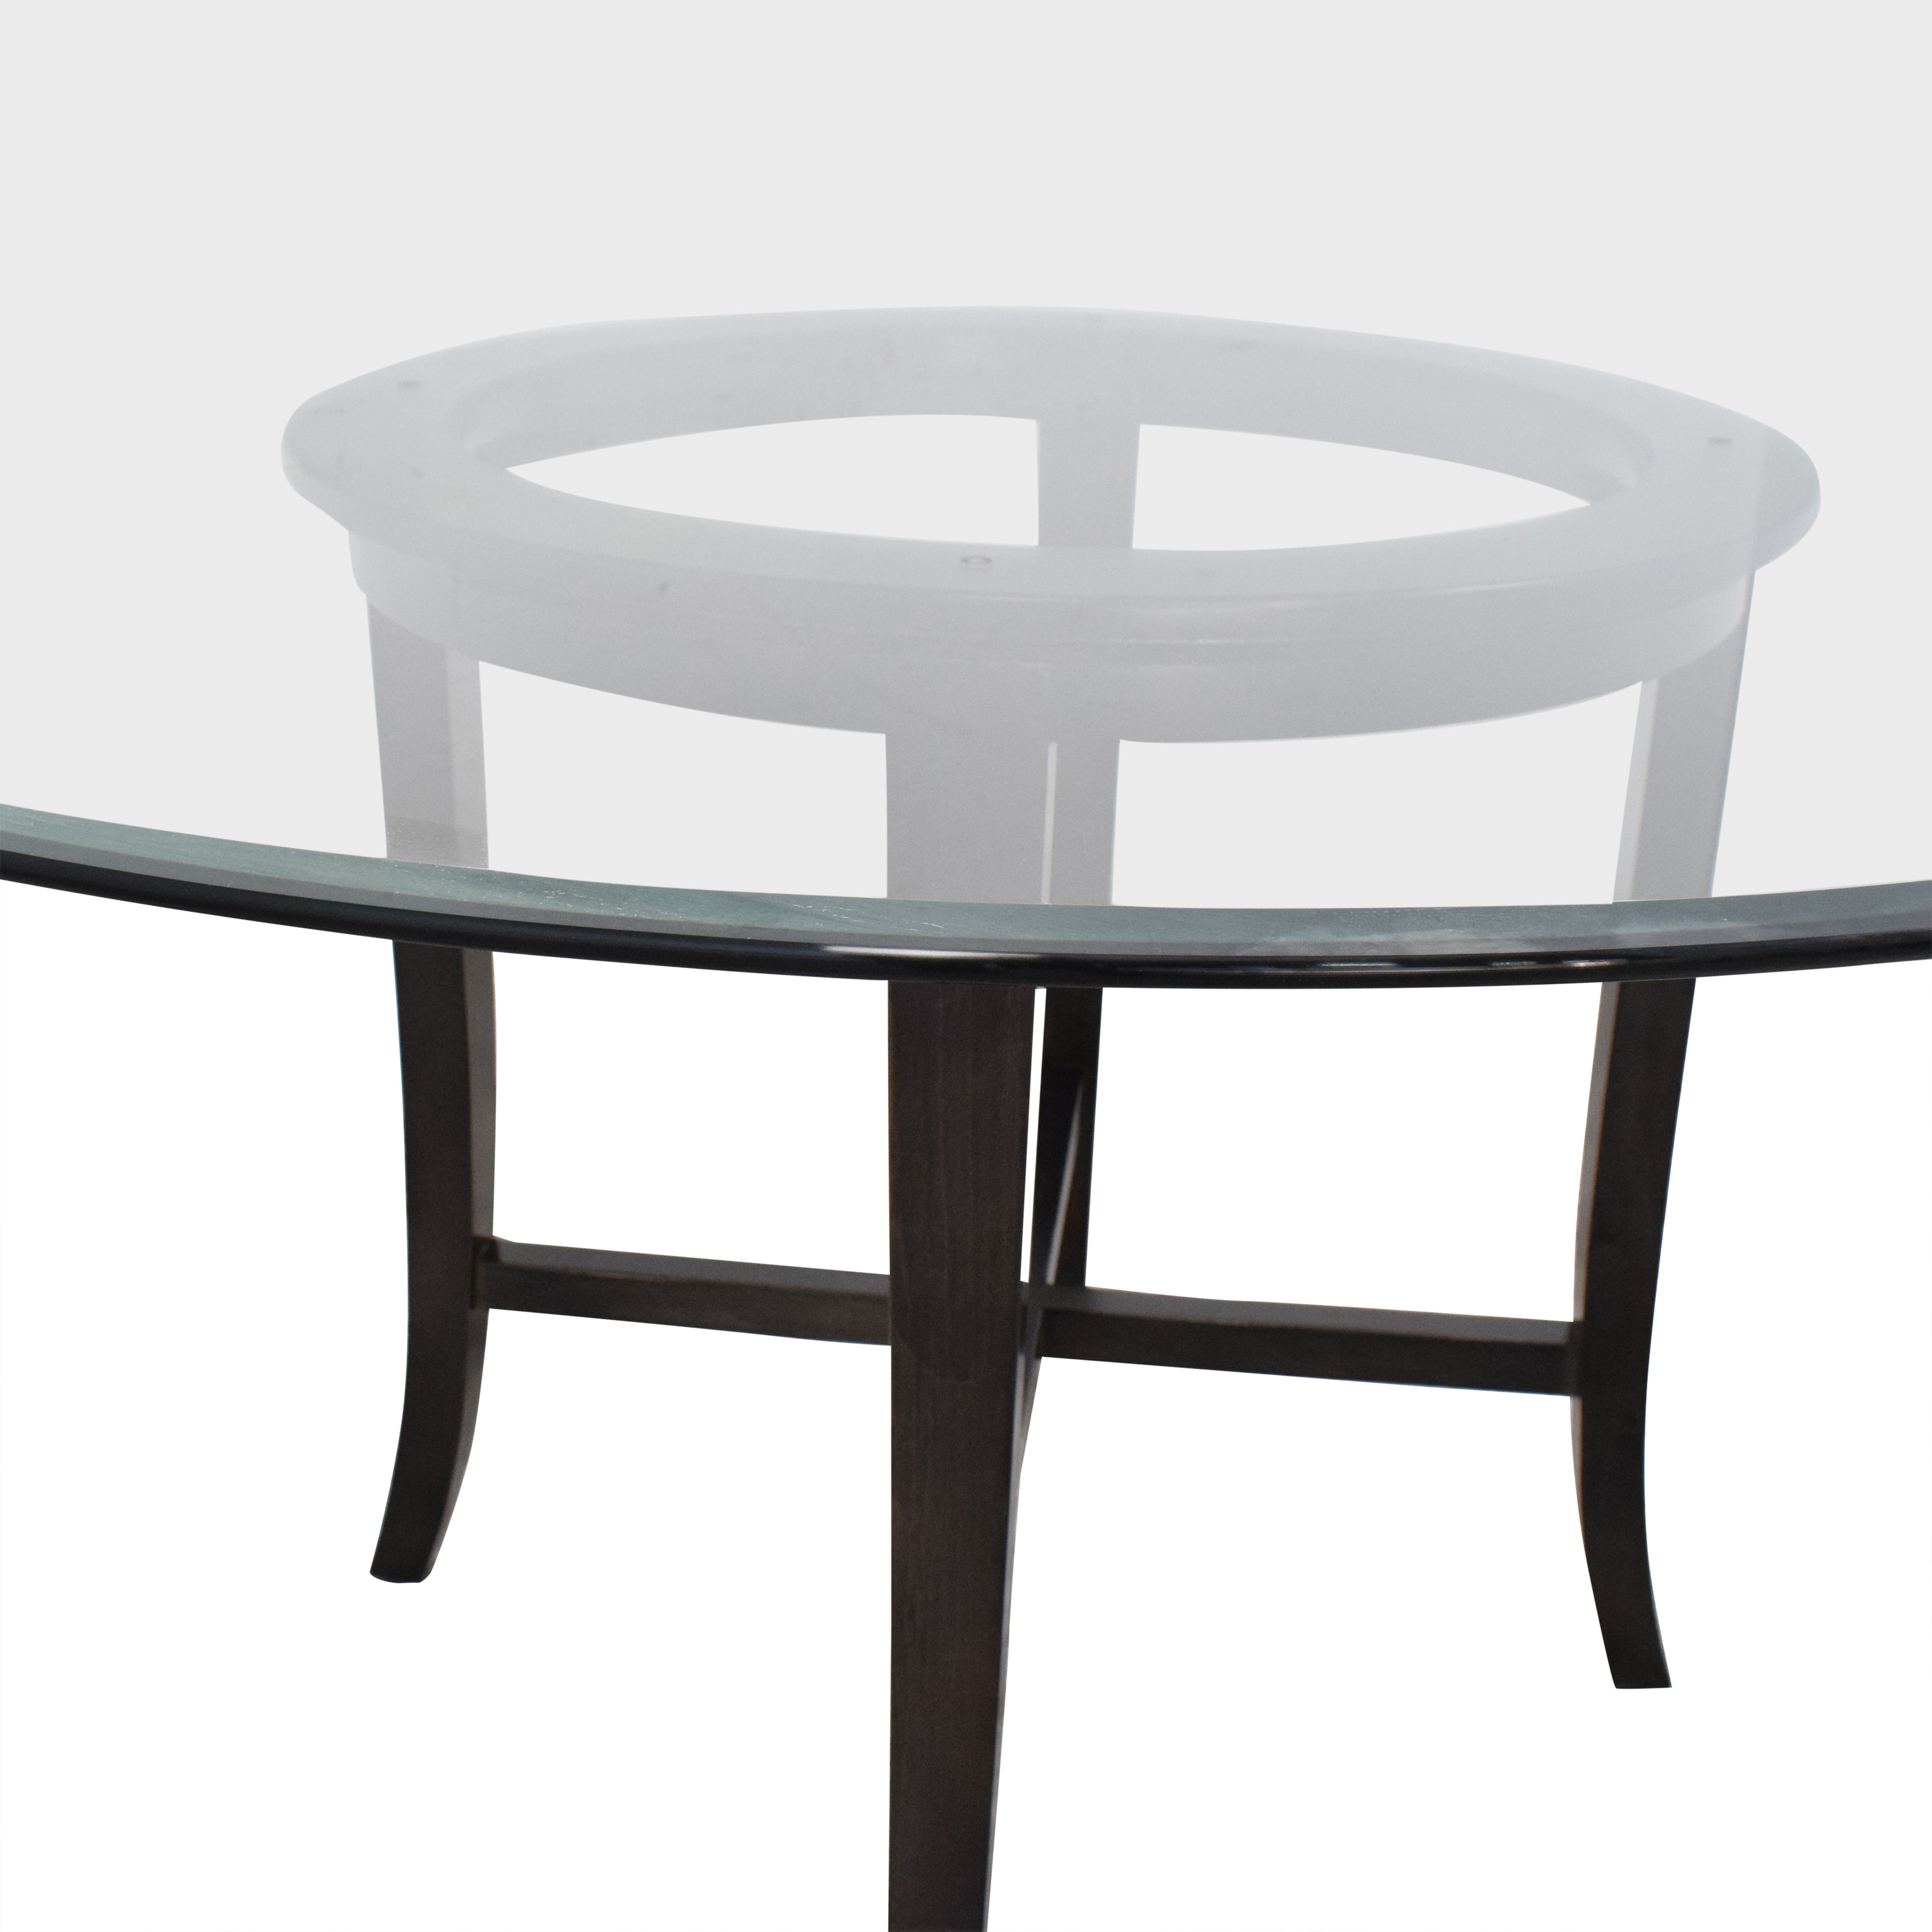 Crate & Barrel Crate & Barrel Halo Round Dining Table with Glass Top ma